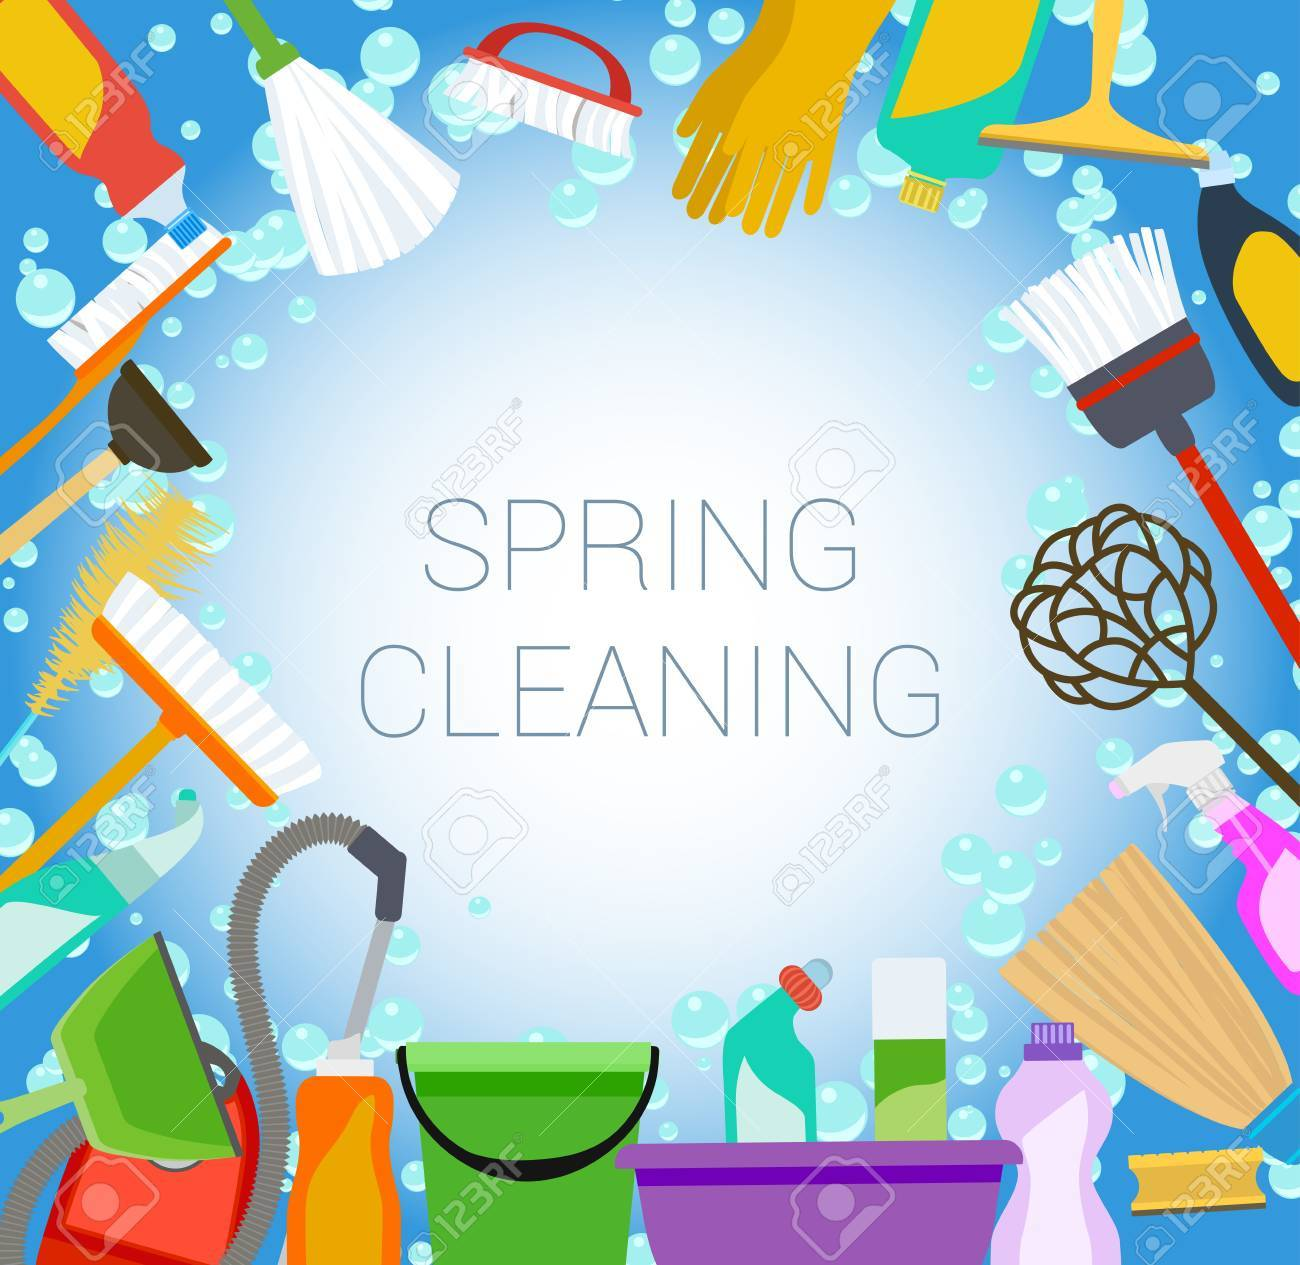 spring cleaning background with tools and bubbles.